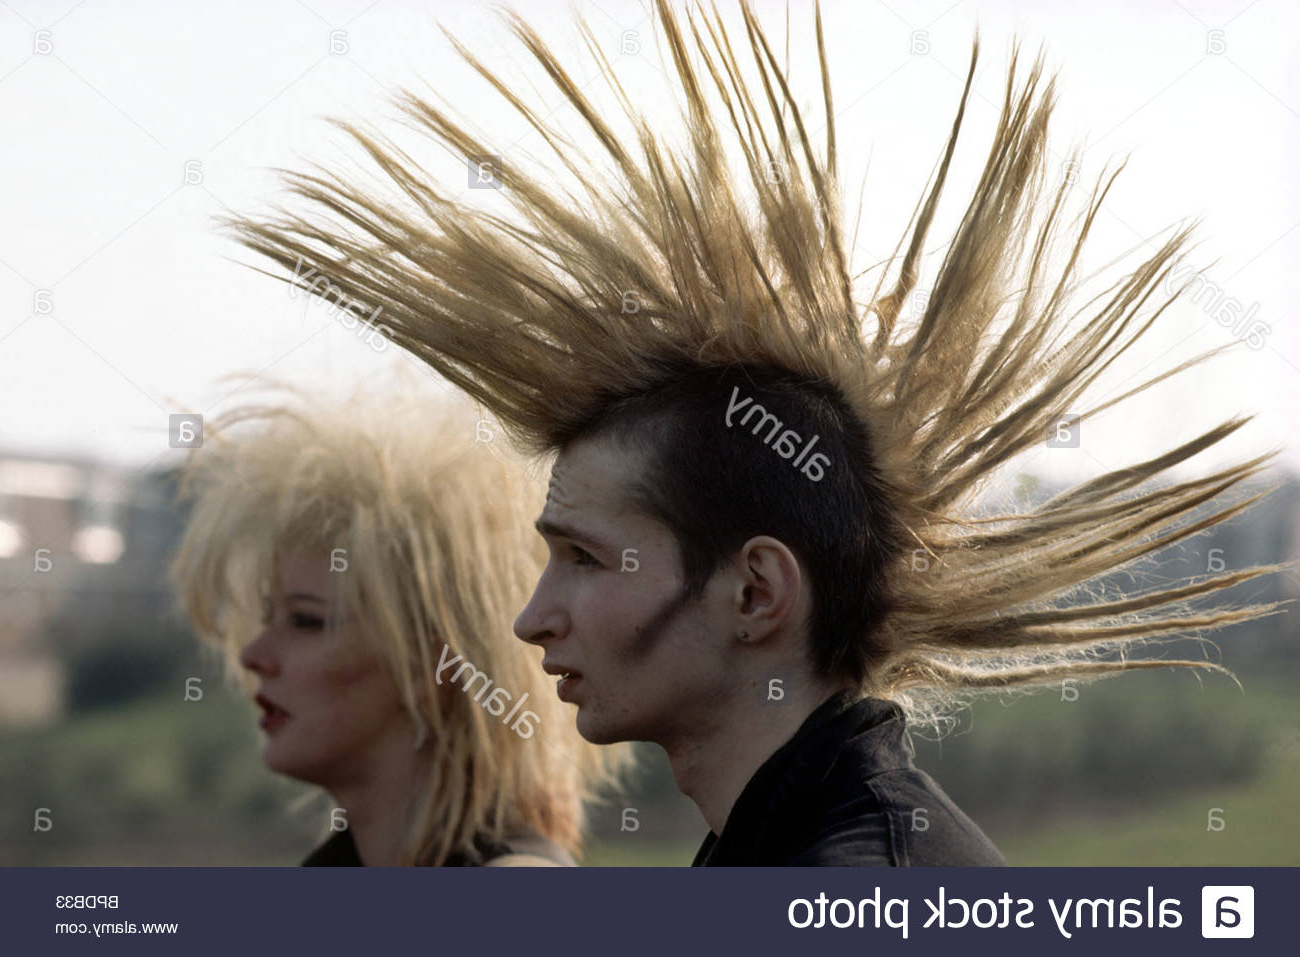 Teased Hair Stock Photos & Teased Hair Stock Images – Alamy In Latest Teased Long Hair Mohawk Hairstyles (View 18 of 20)